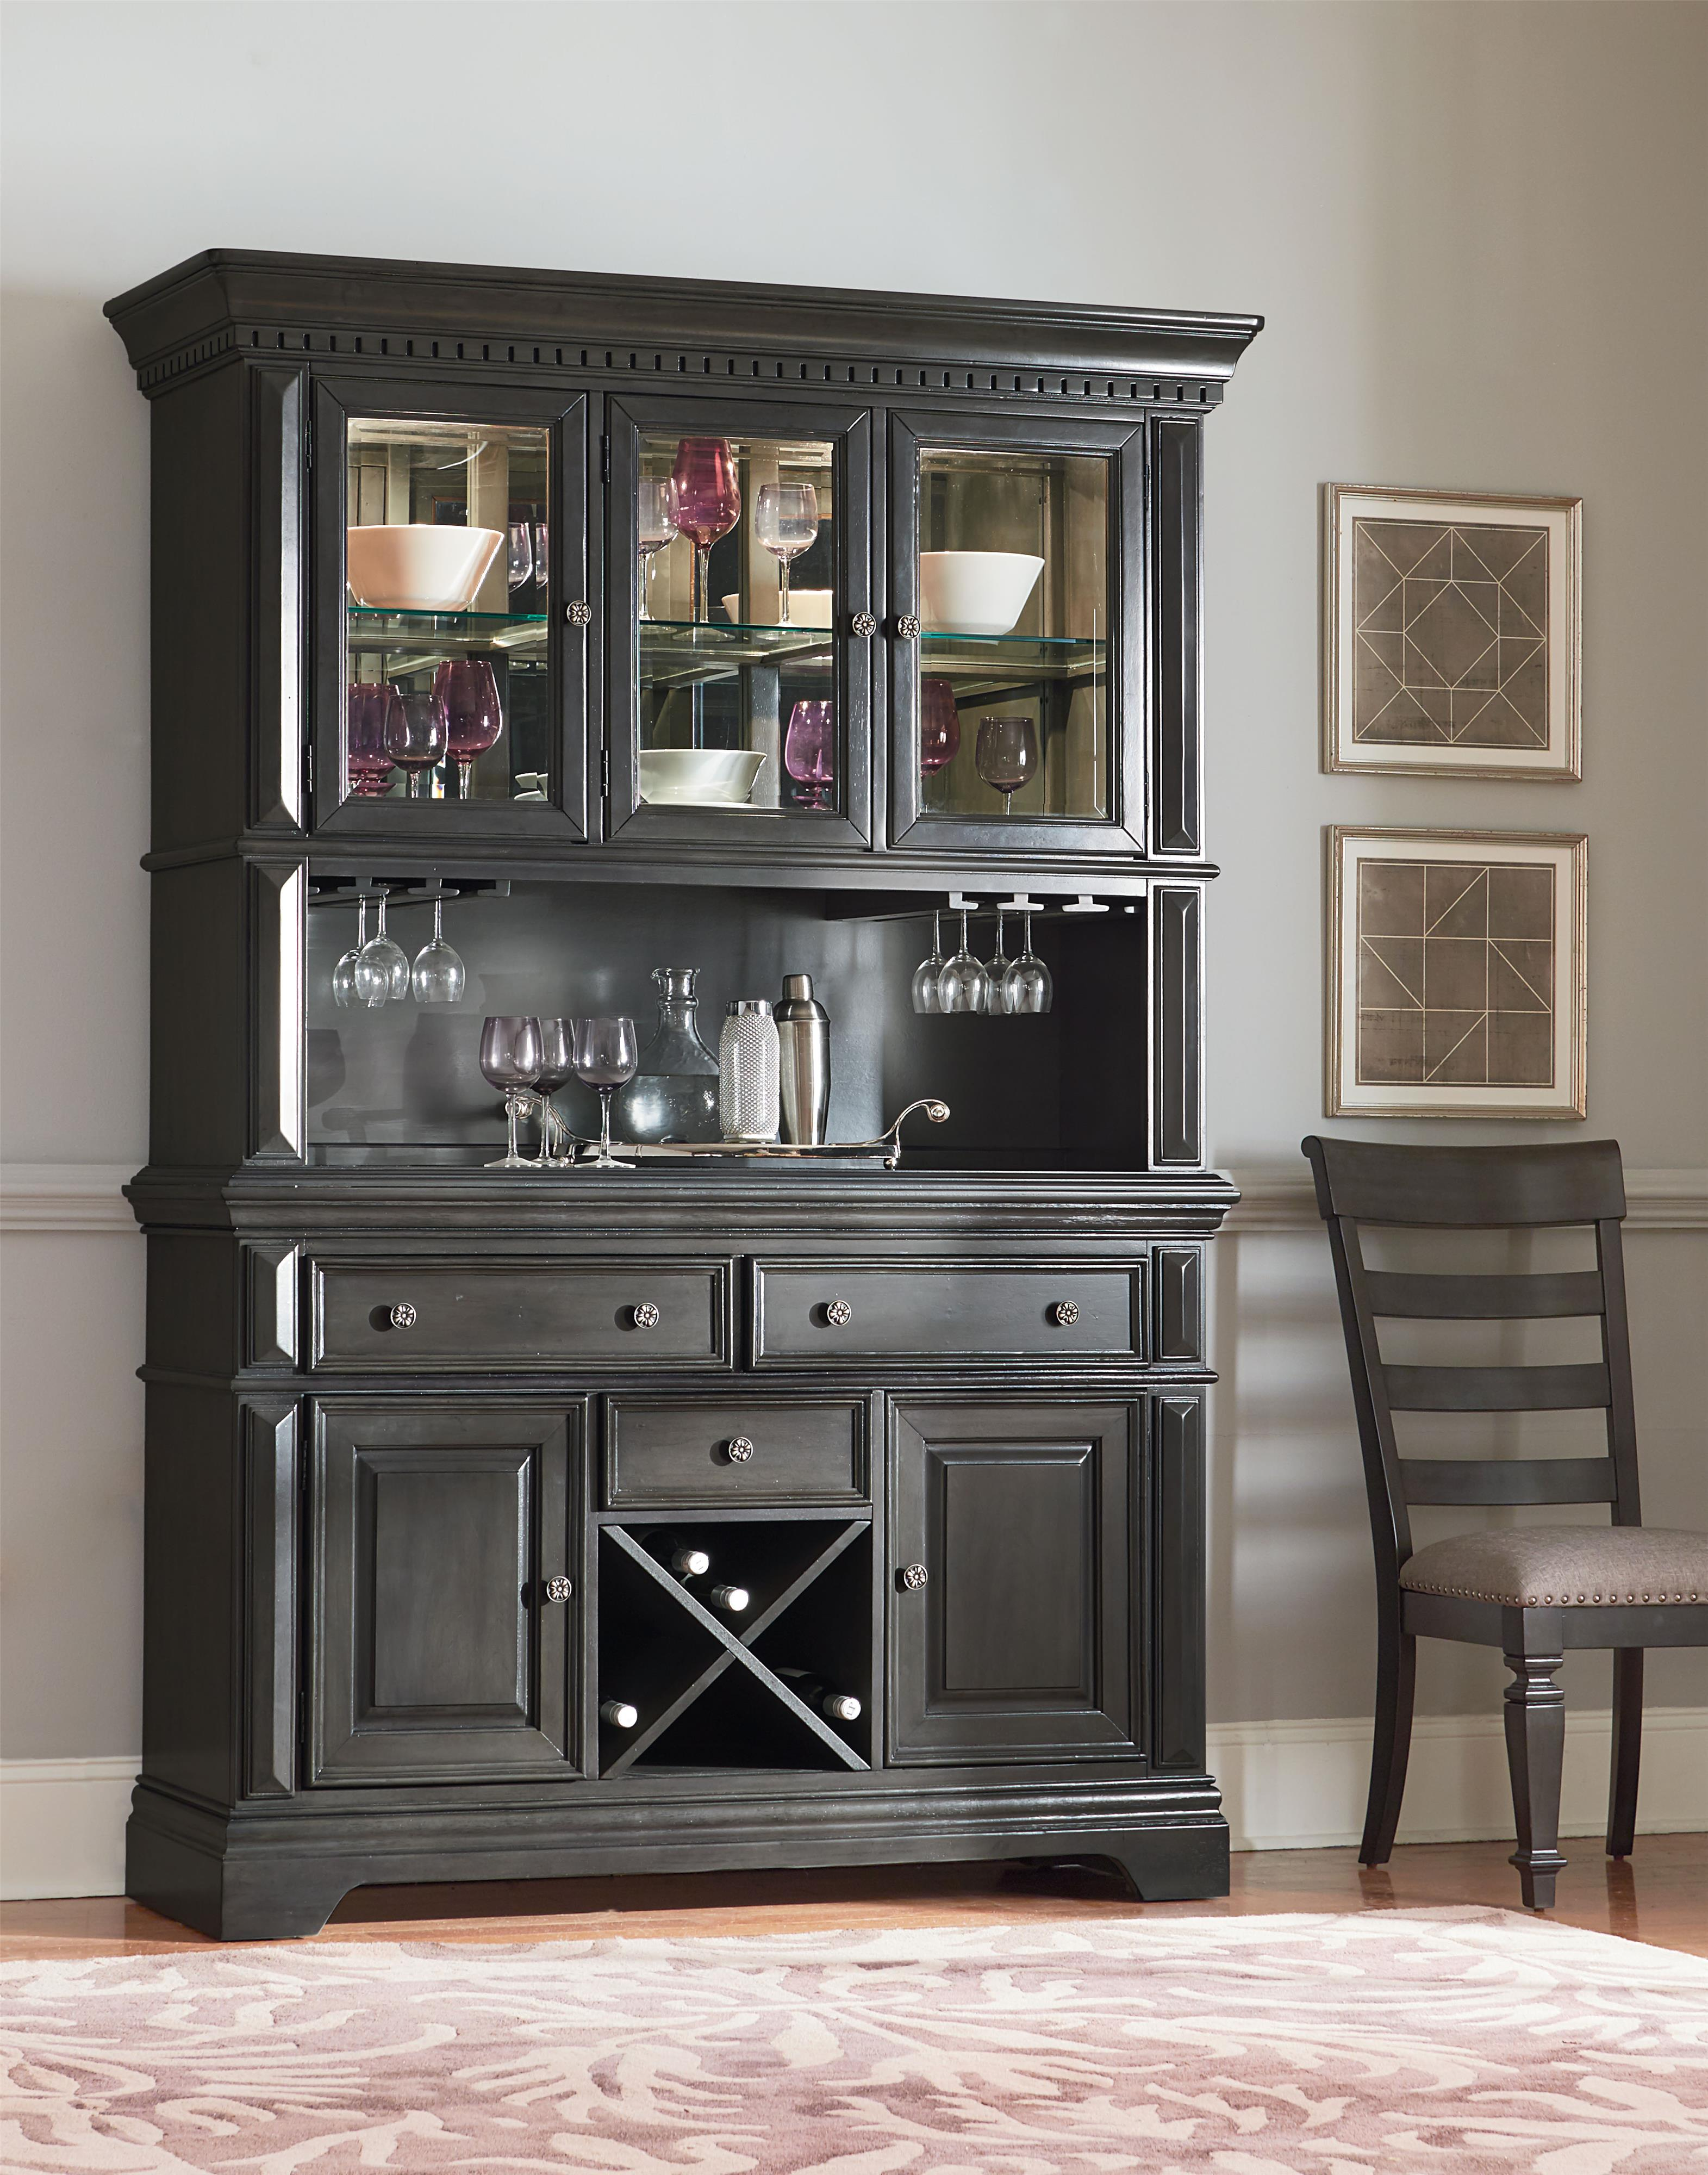 Traditionally Styled China Cabinet With Smooth Grey Finish By